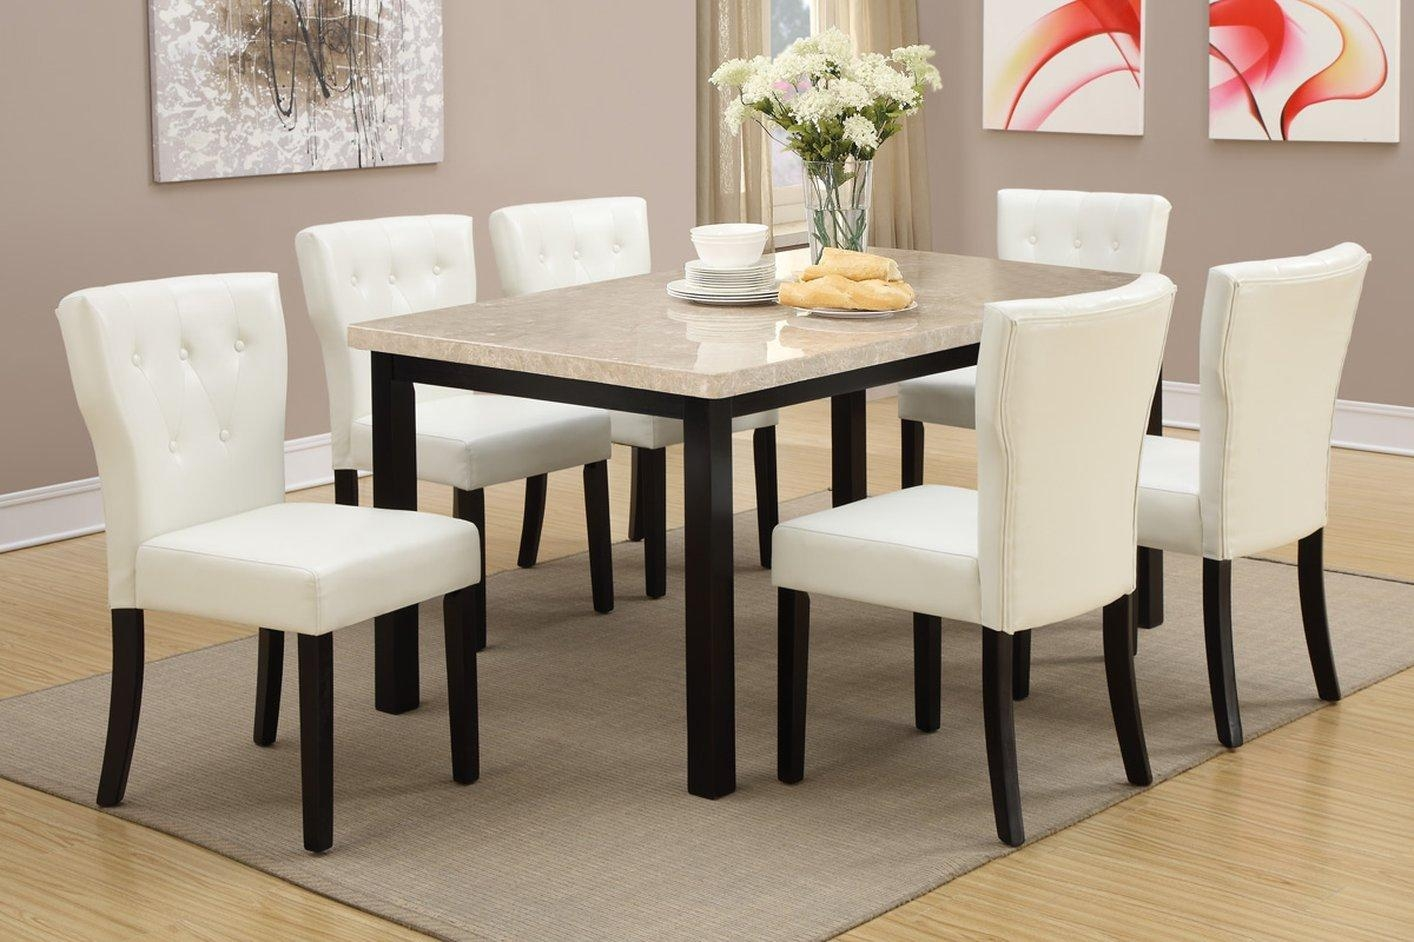 Brown Marble Dining Table – Steal A Sofa Furniture Outlet Los In Dining Table With Sofa Chairs (Image 6 of 20)